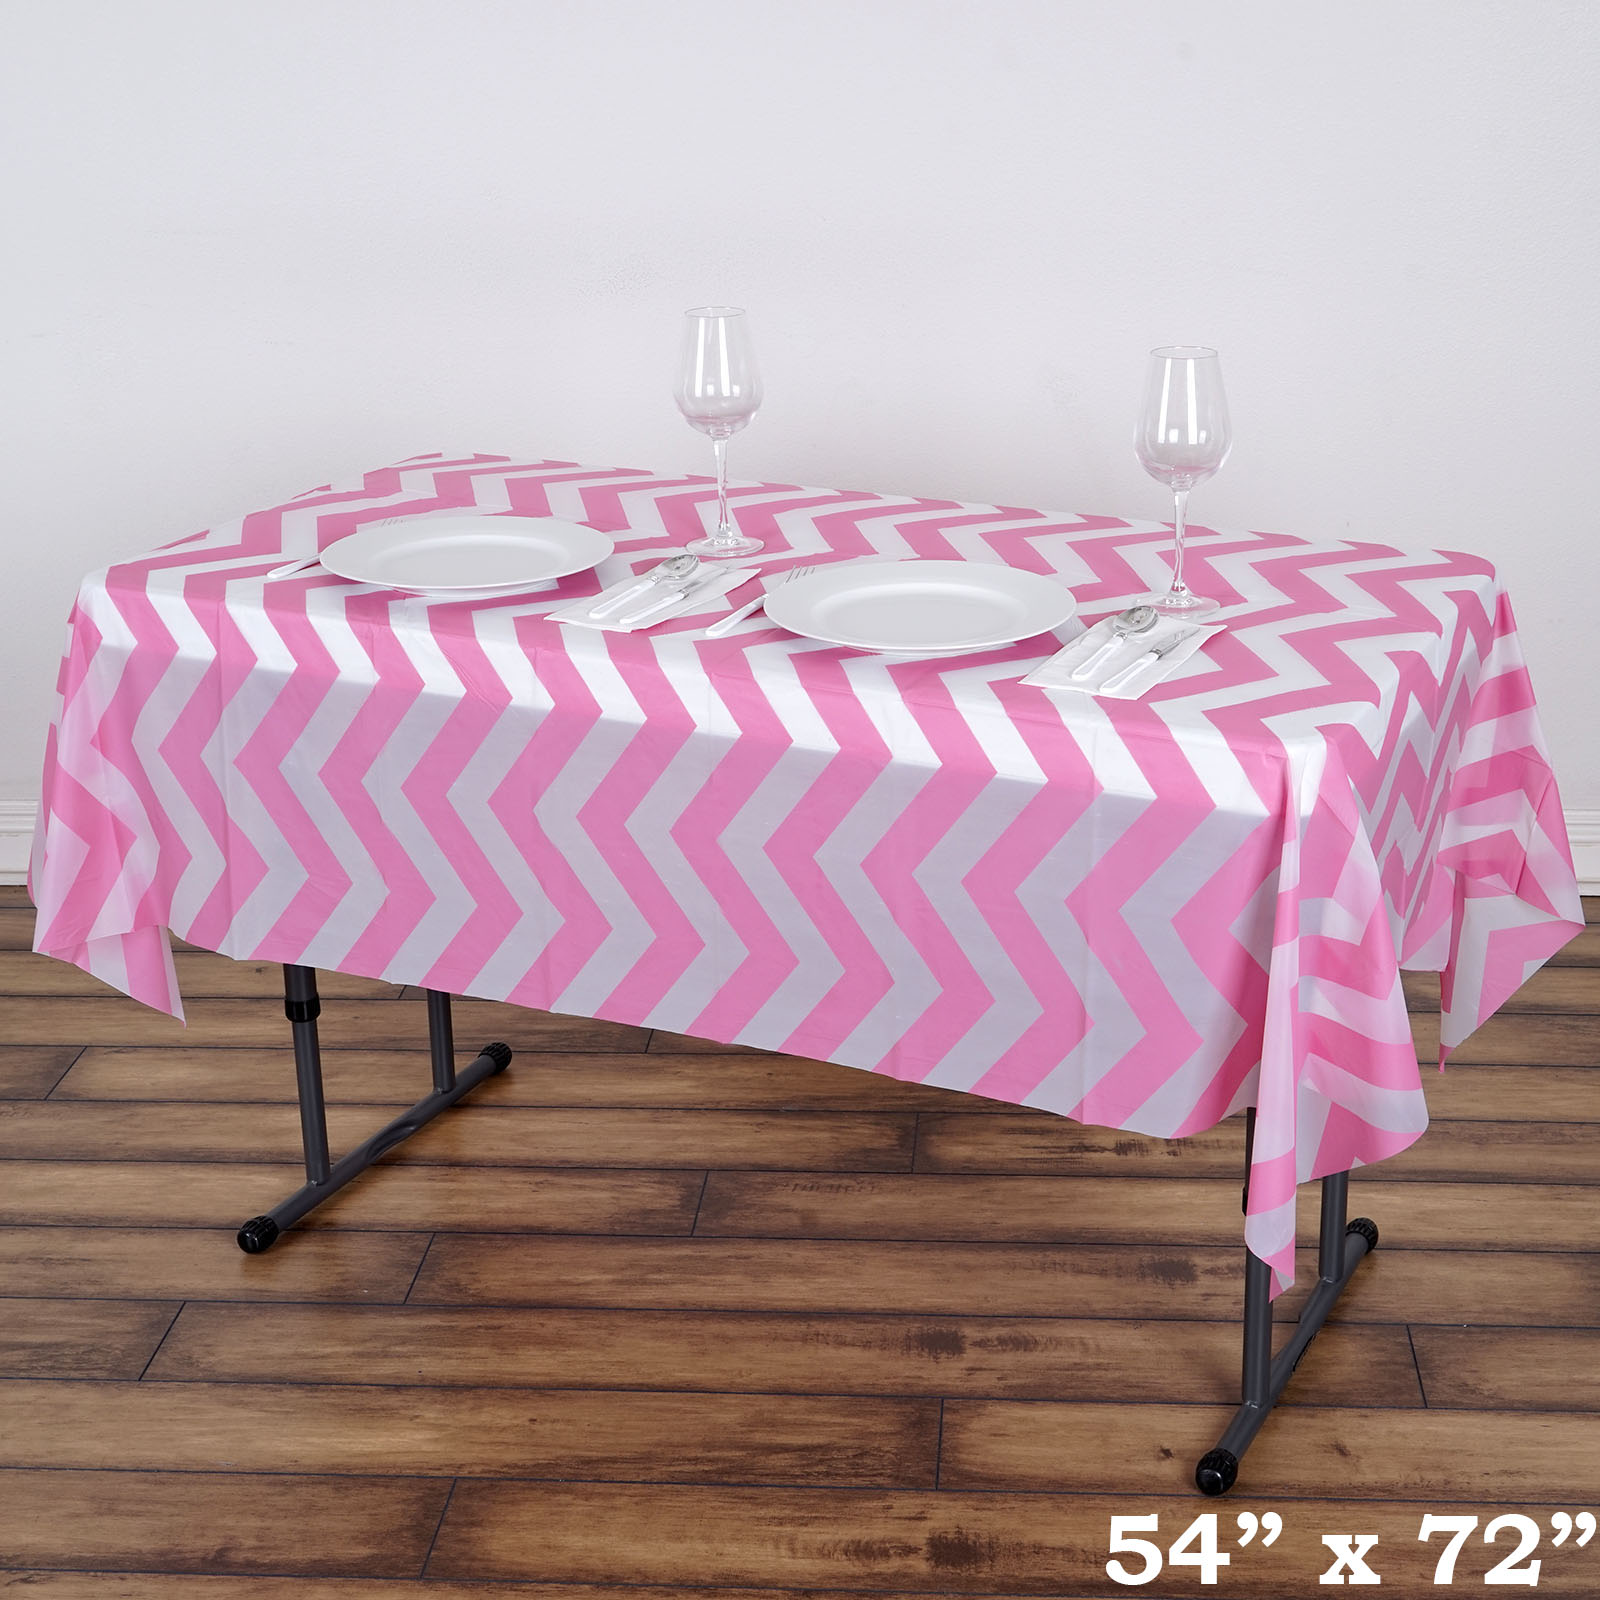 PLASTIC TABLE COVERS 54x72 In Chevron Disposable TABLECLOTHS